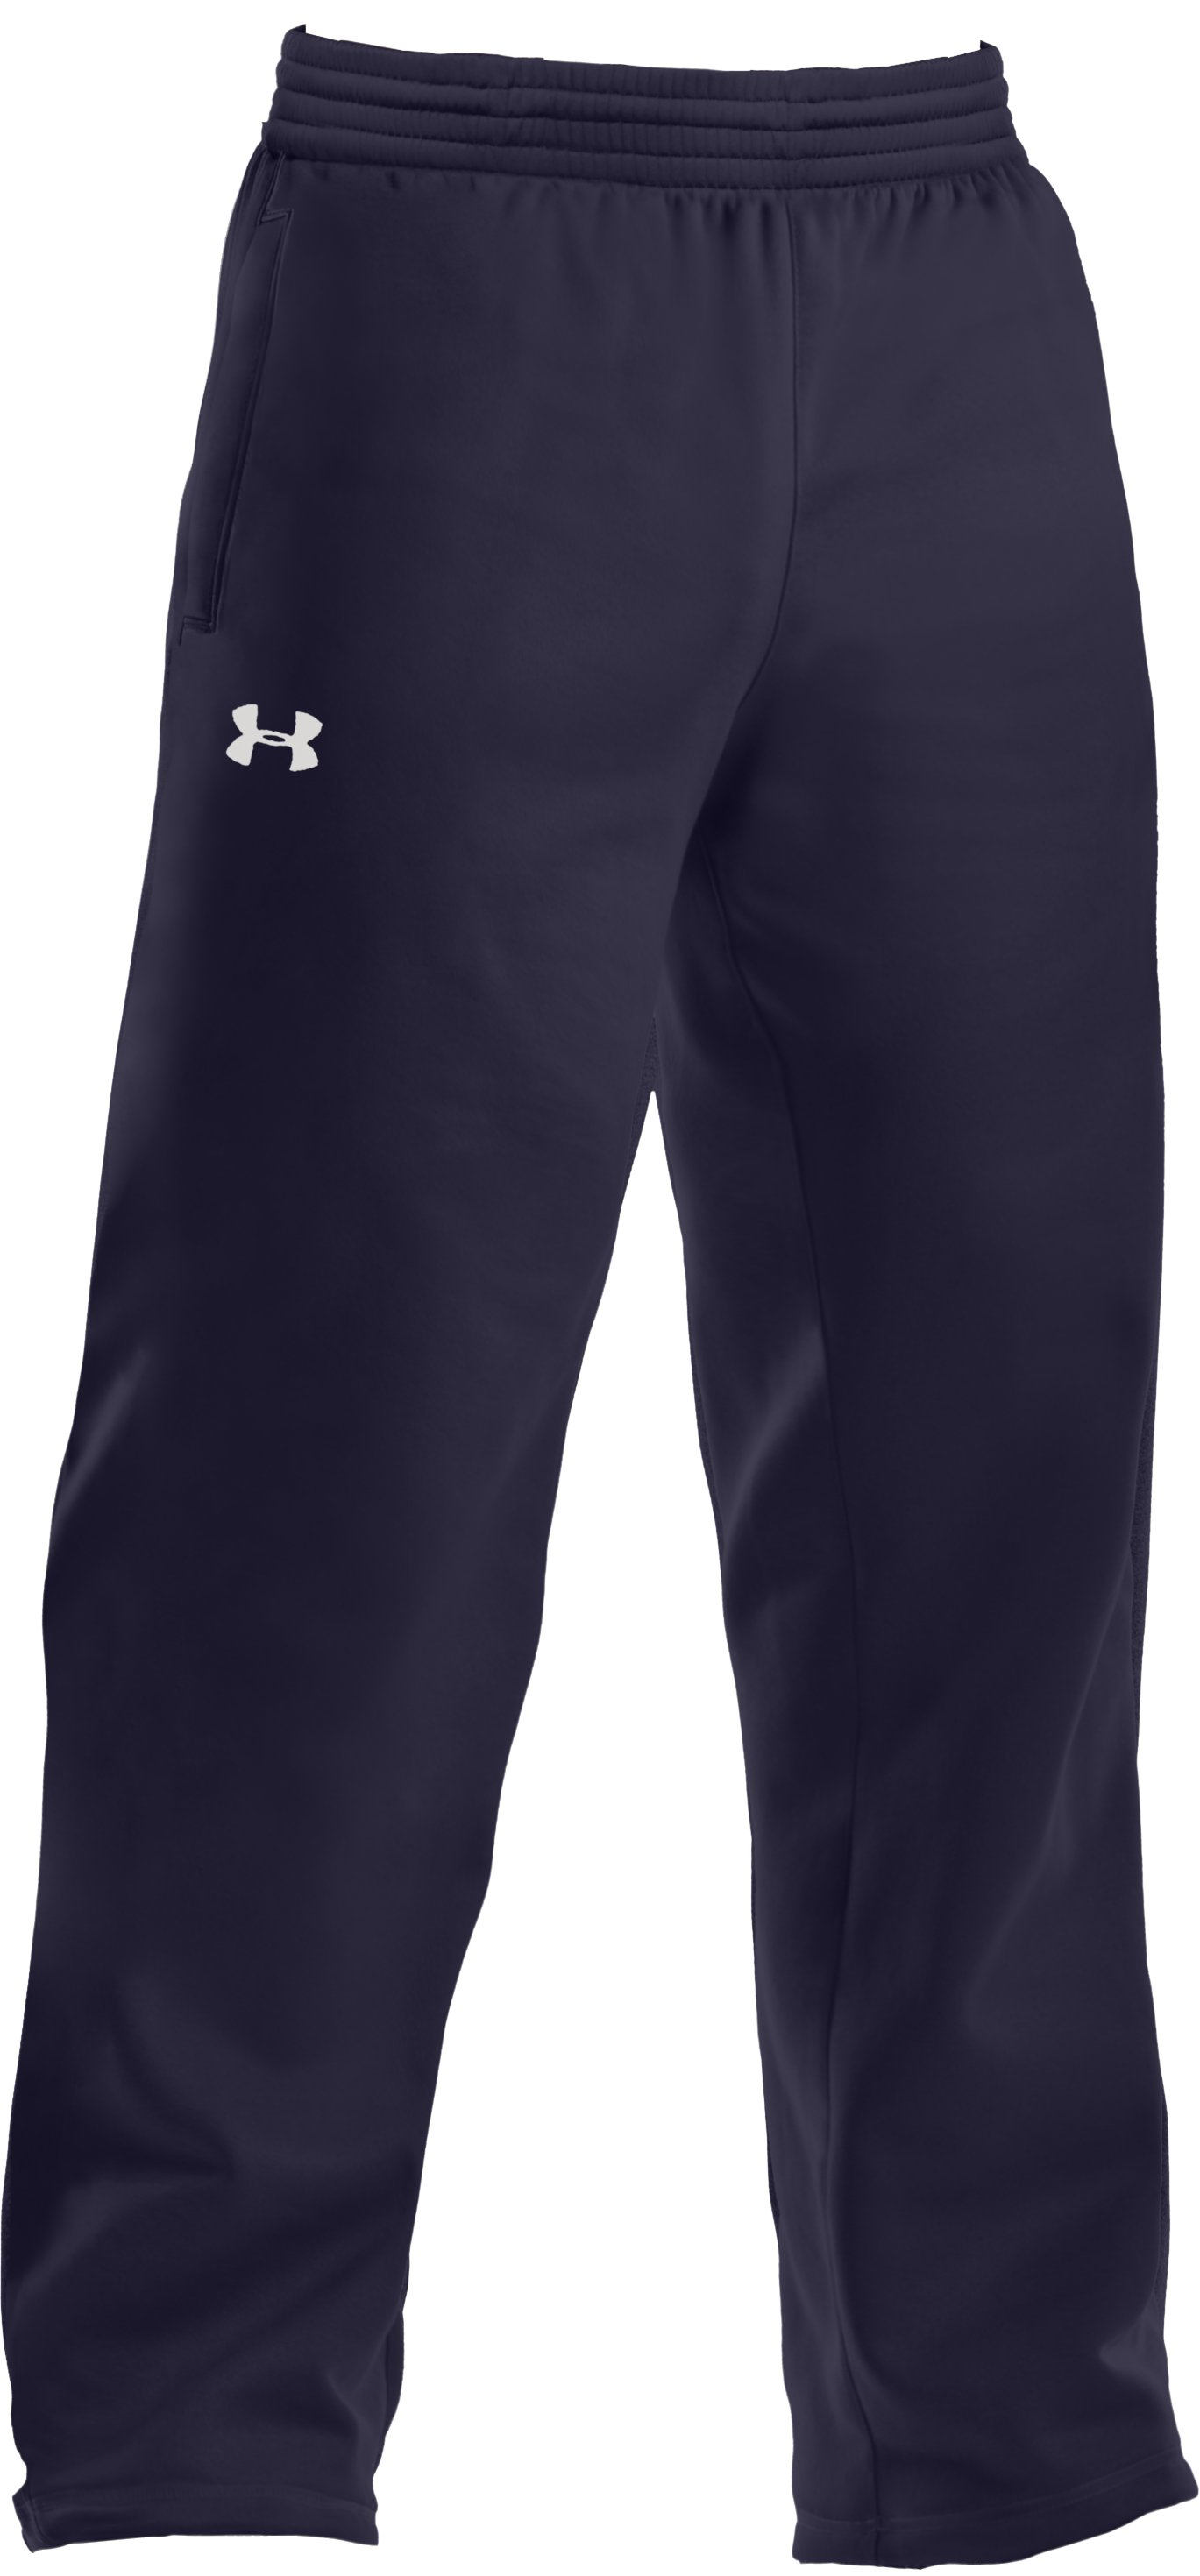 Men's Armour® Fleece Team Pants, Midnight Navy